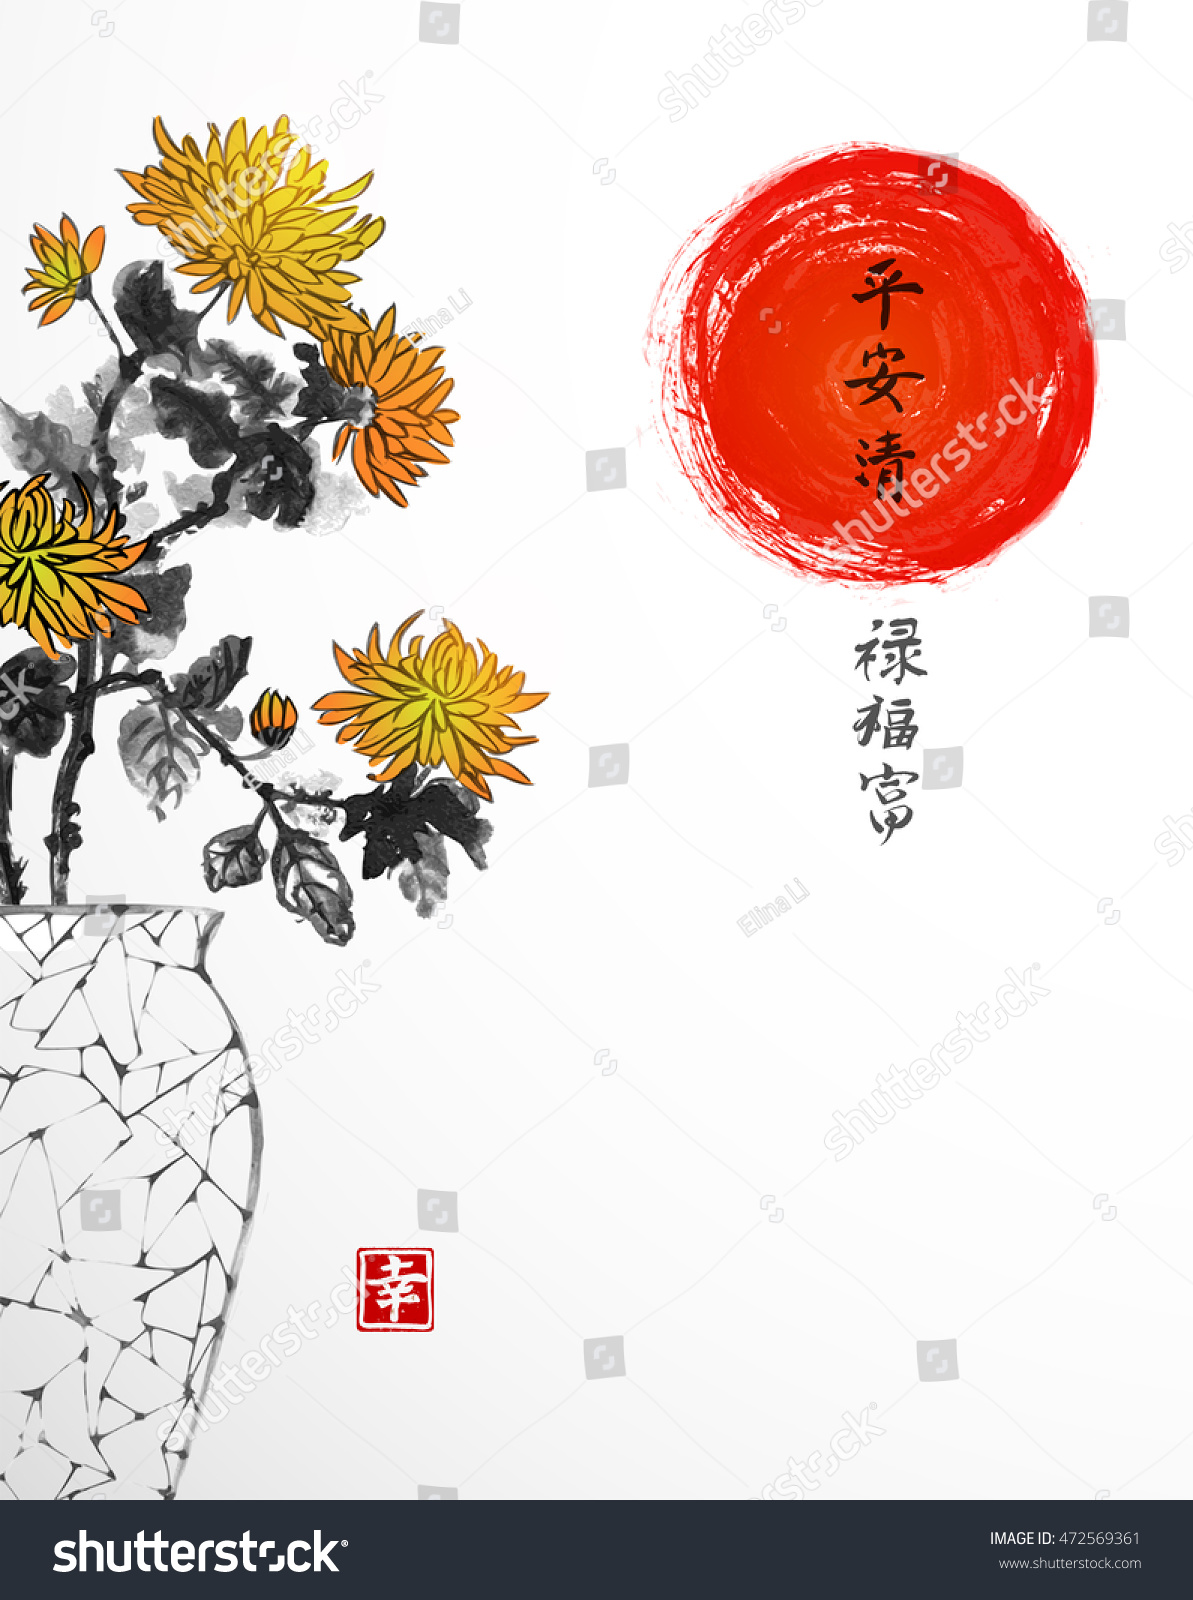 Vintage japanese vase chrysanthemum flowers red stock vector vintage japanese vase with chrysanthemum flowers and red sun on white background traditional oriental ink reviewsmspy